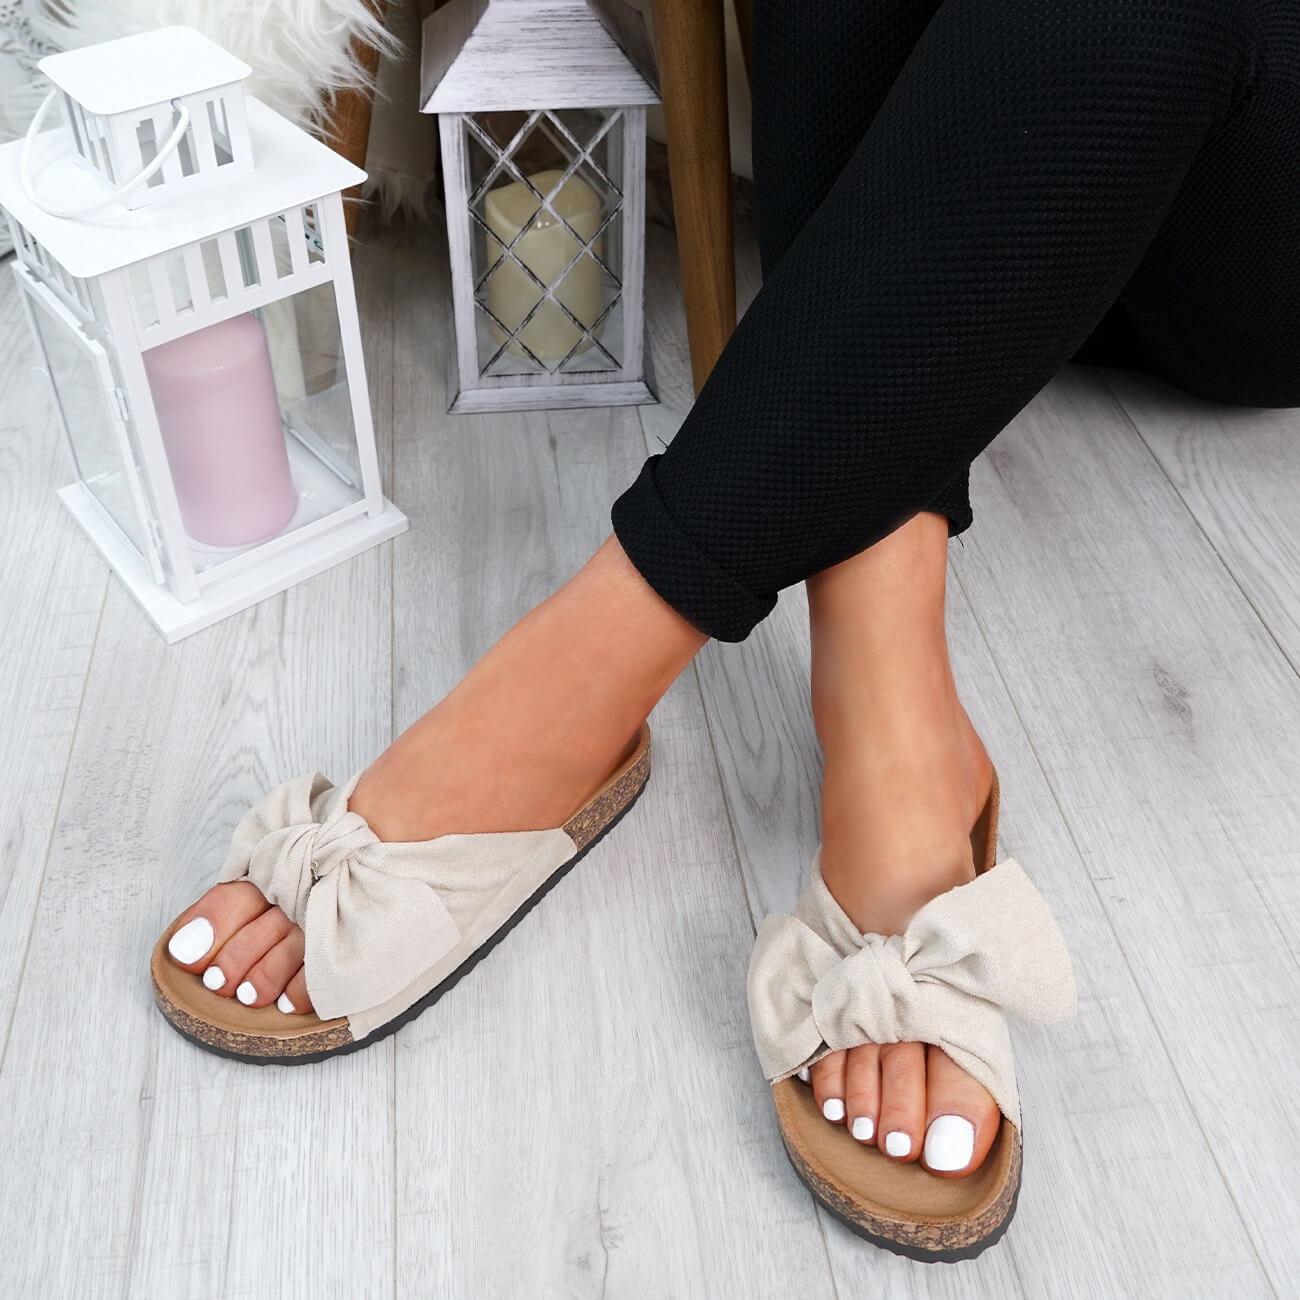 WOMENS-LADIES-SLIP-ON-FLAT-SANDALS-BOW-SLIDERS-SUMMER-CASUAL-SHOES-SIZE thumbnail 9